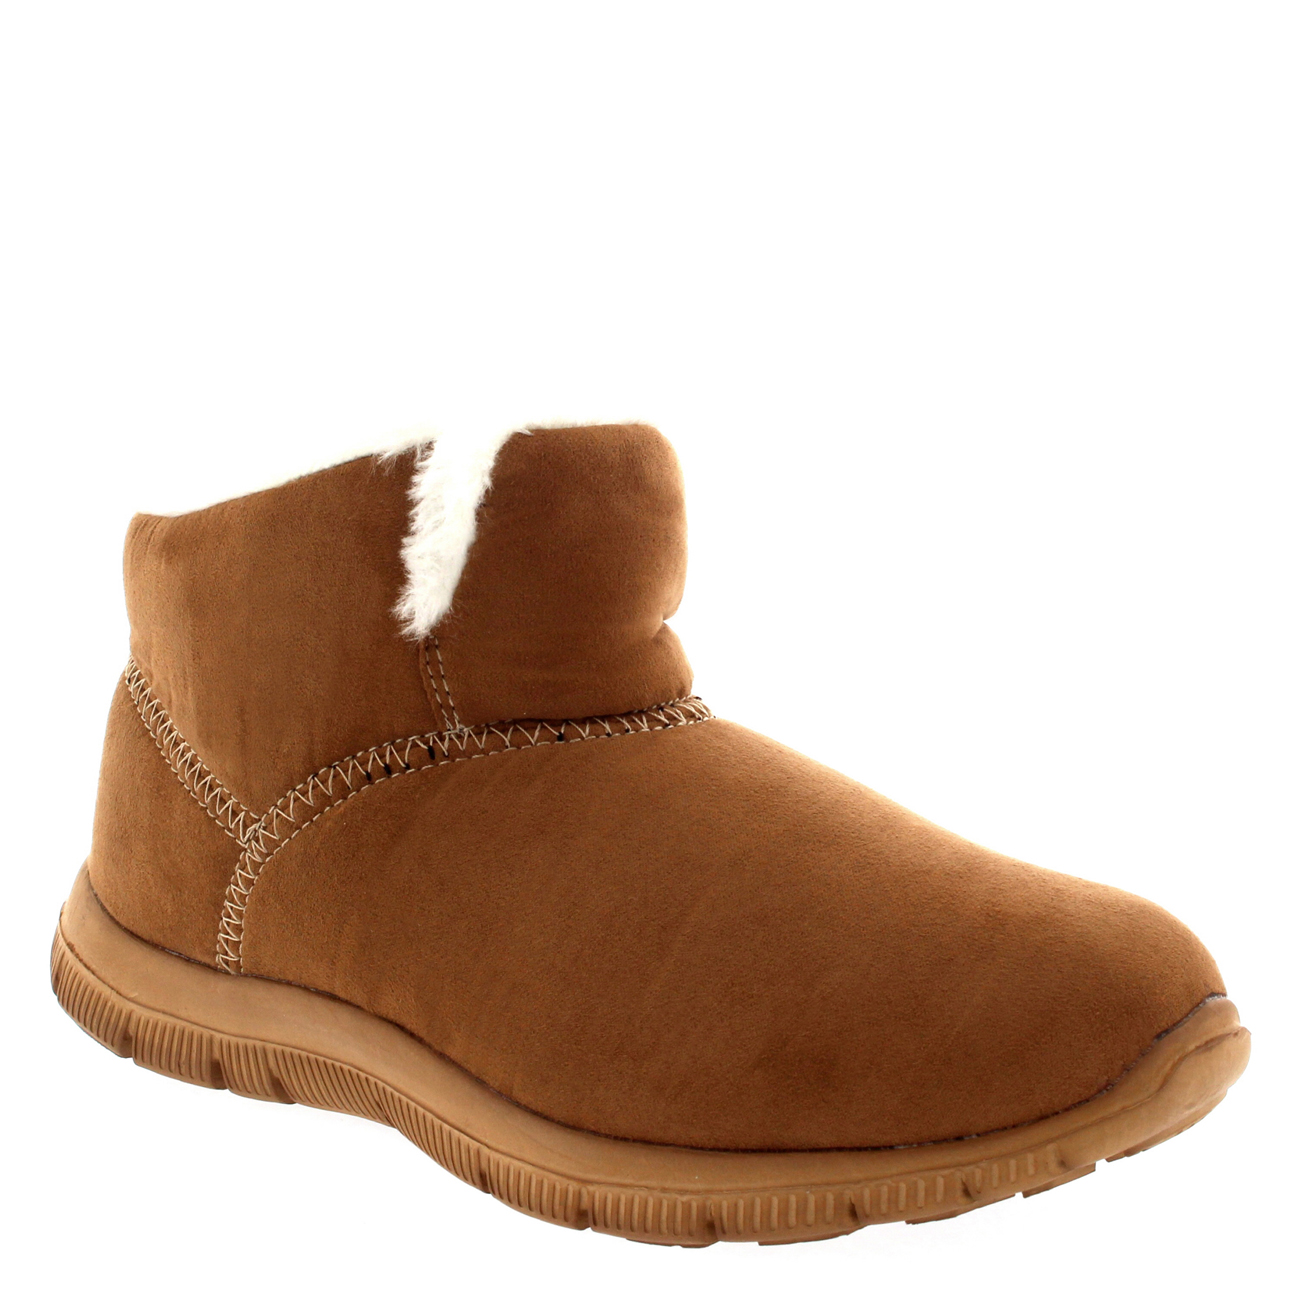 Womens Warm Fur Shoes Winter Slip On Casual Ankle Boot ...